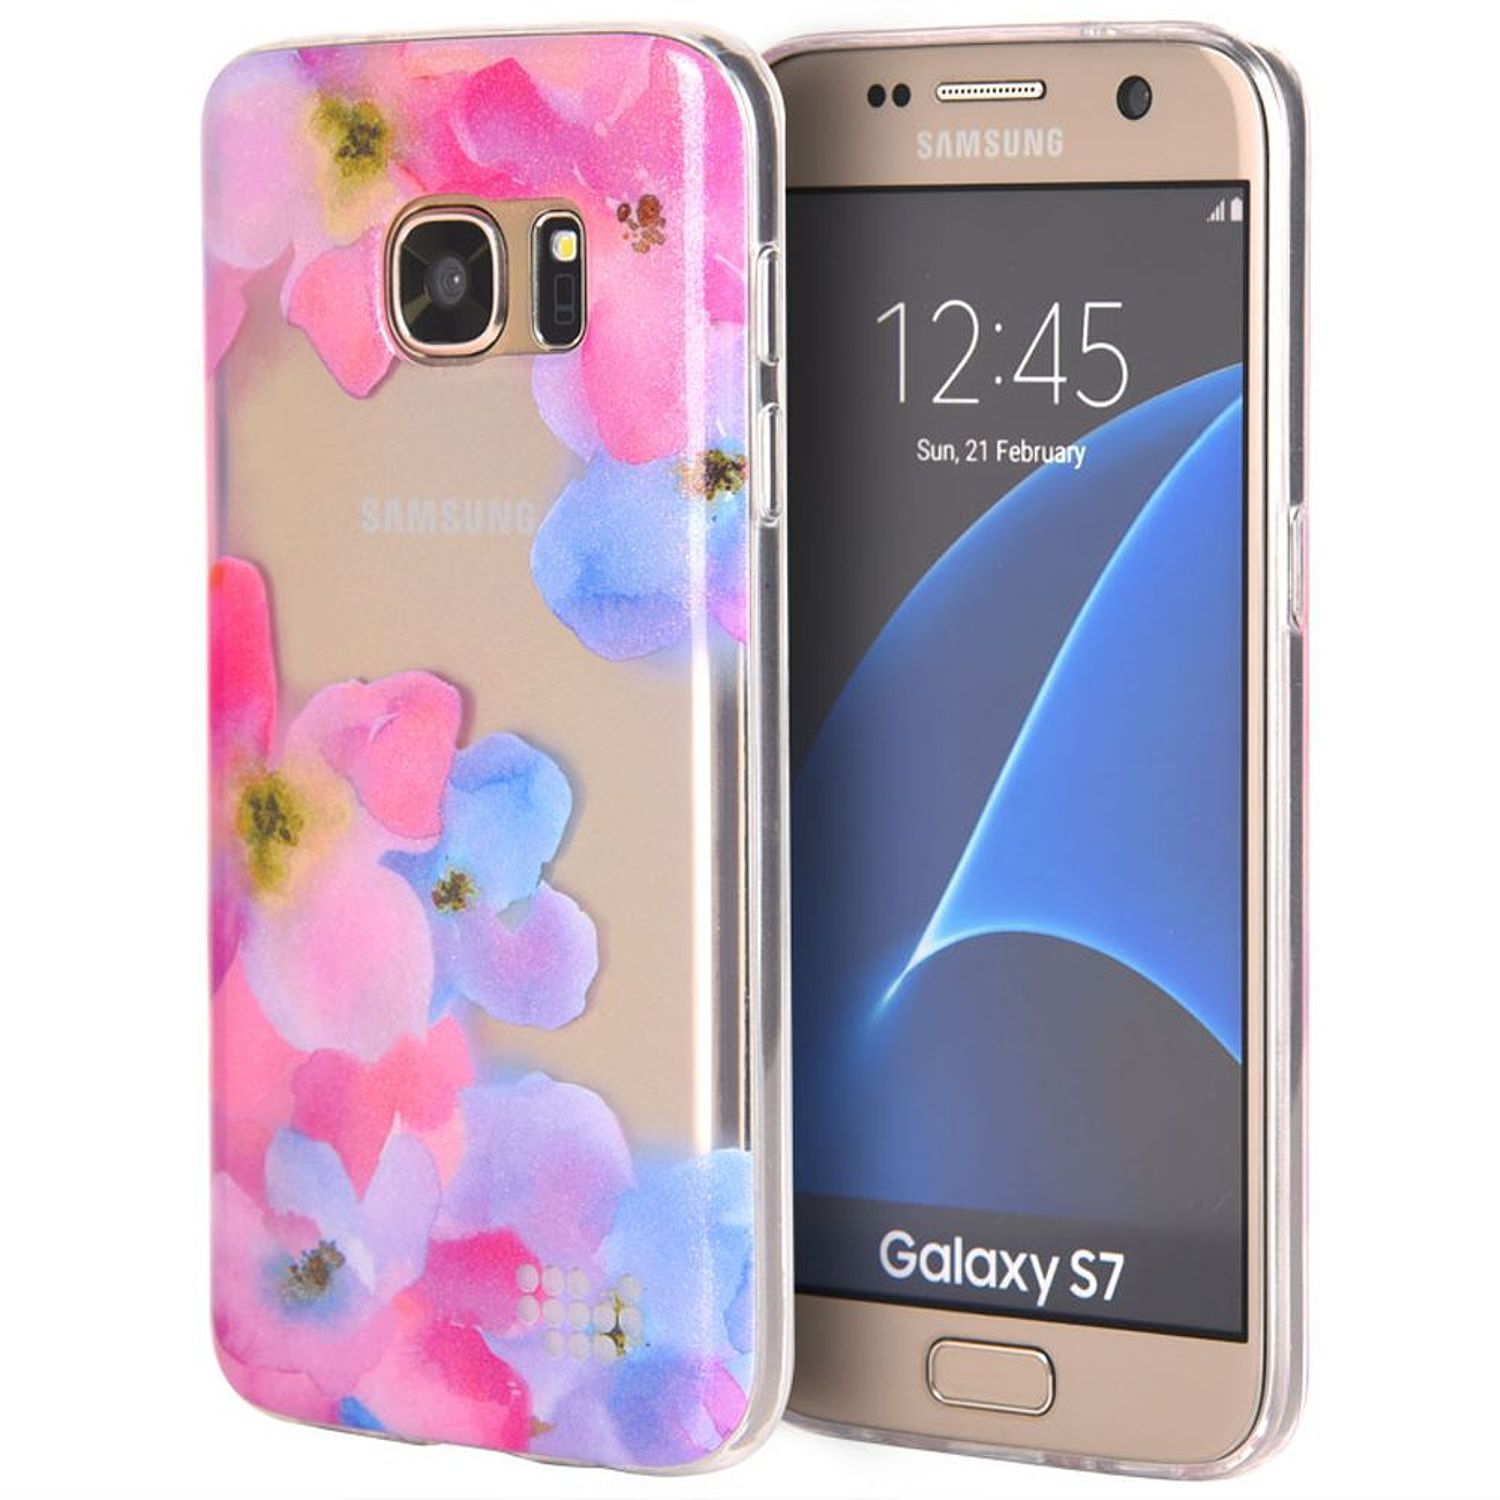 Samsung Galaxy S7 Case, by Insten Be Enchanted TPU IMD Rubber Skin Gel Back Shell Case For Samsung Galaxy S7 - Pink/Purple